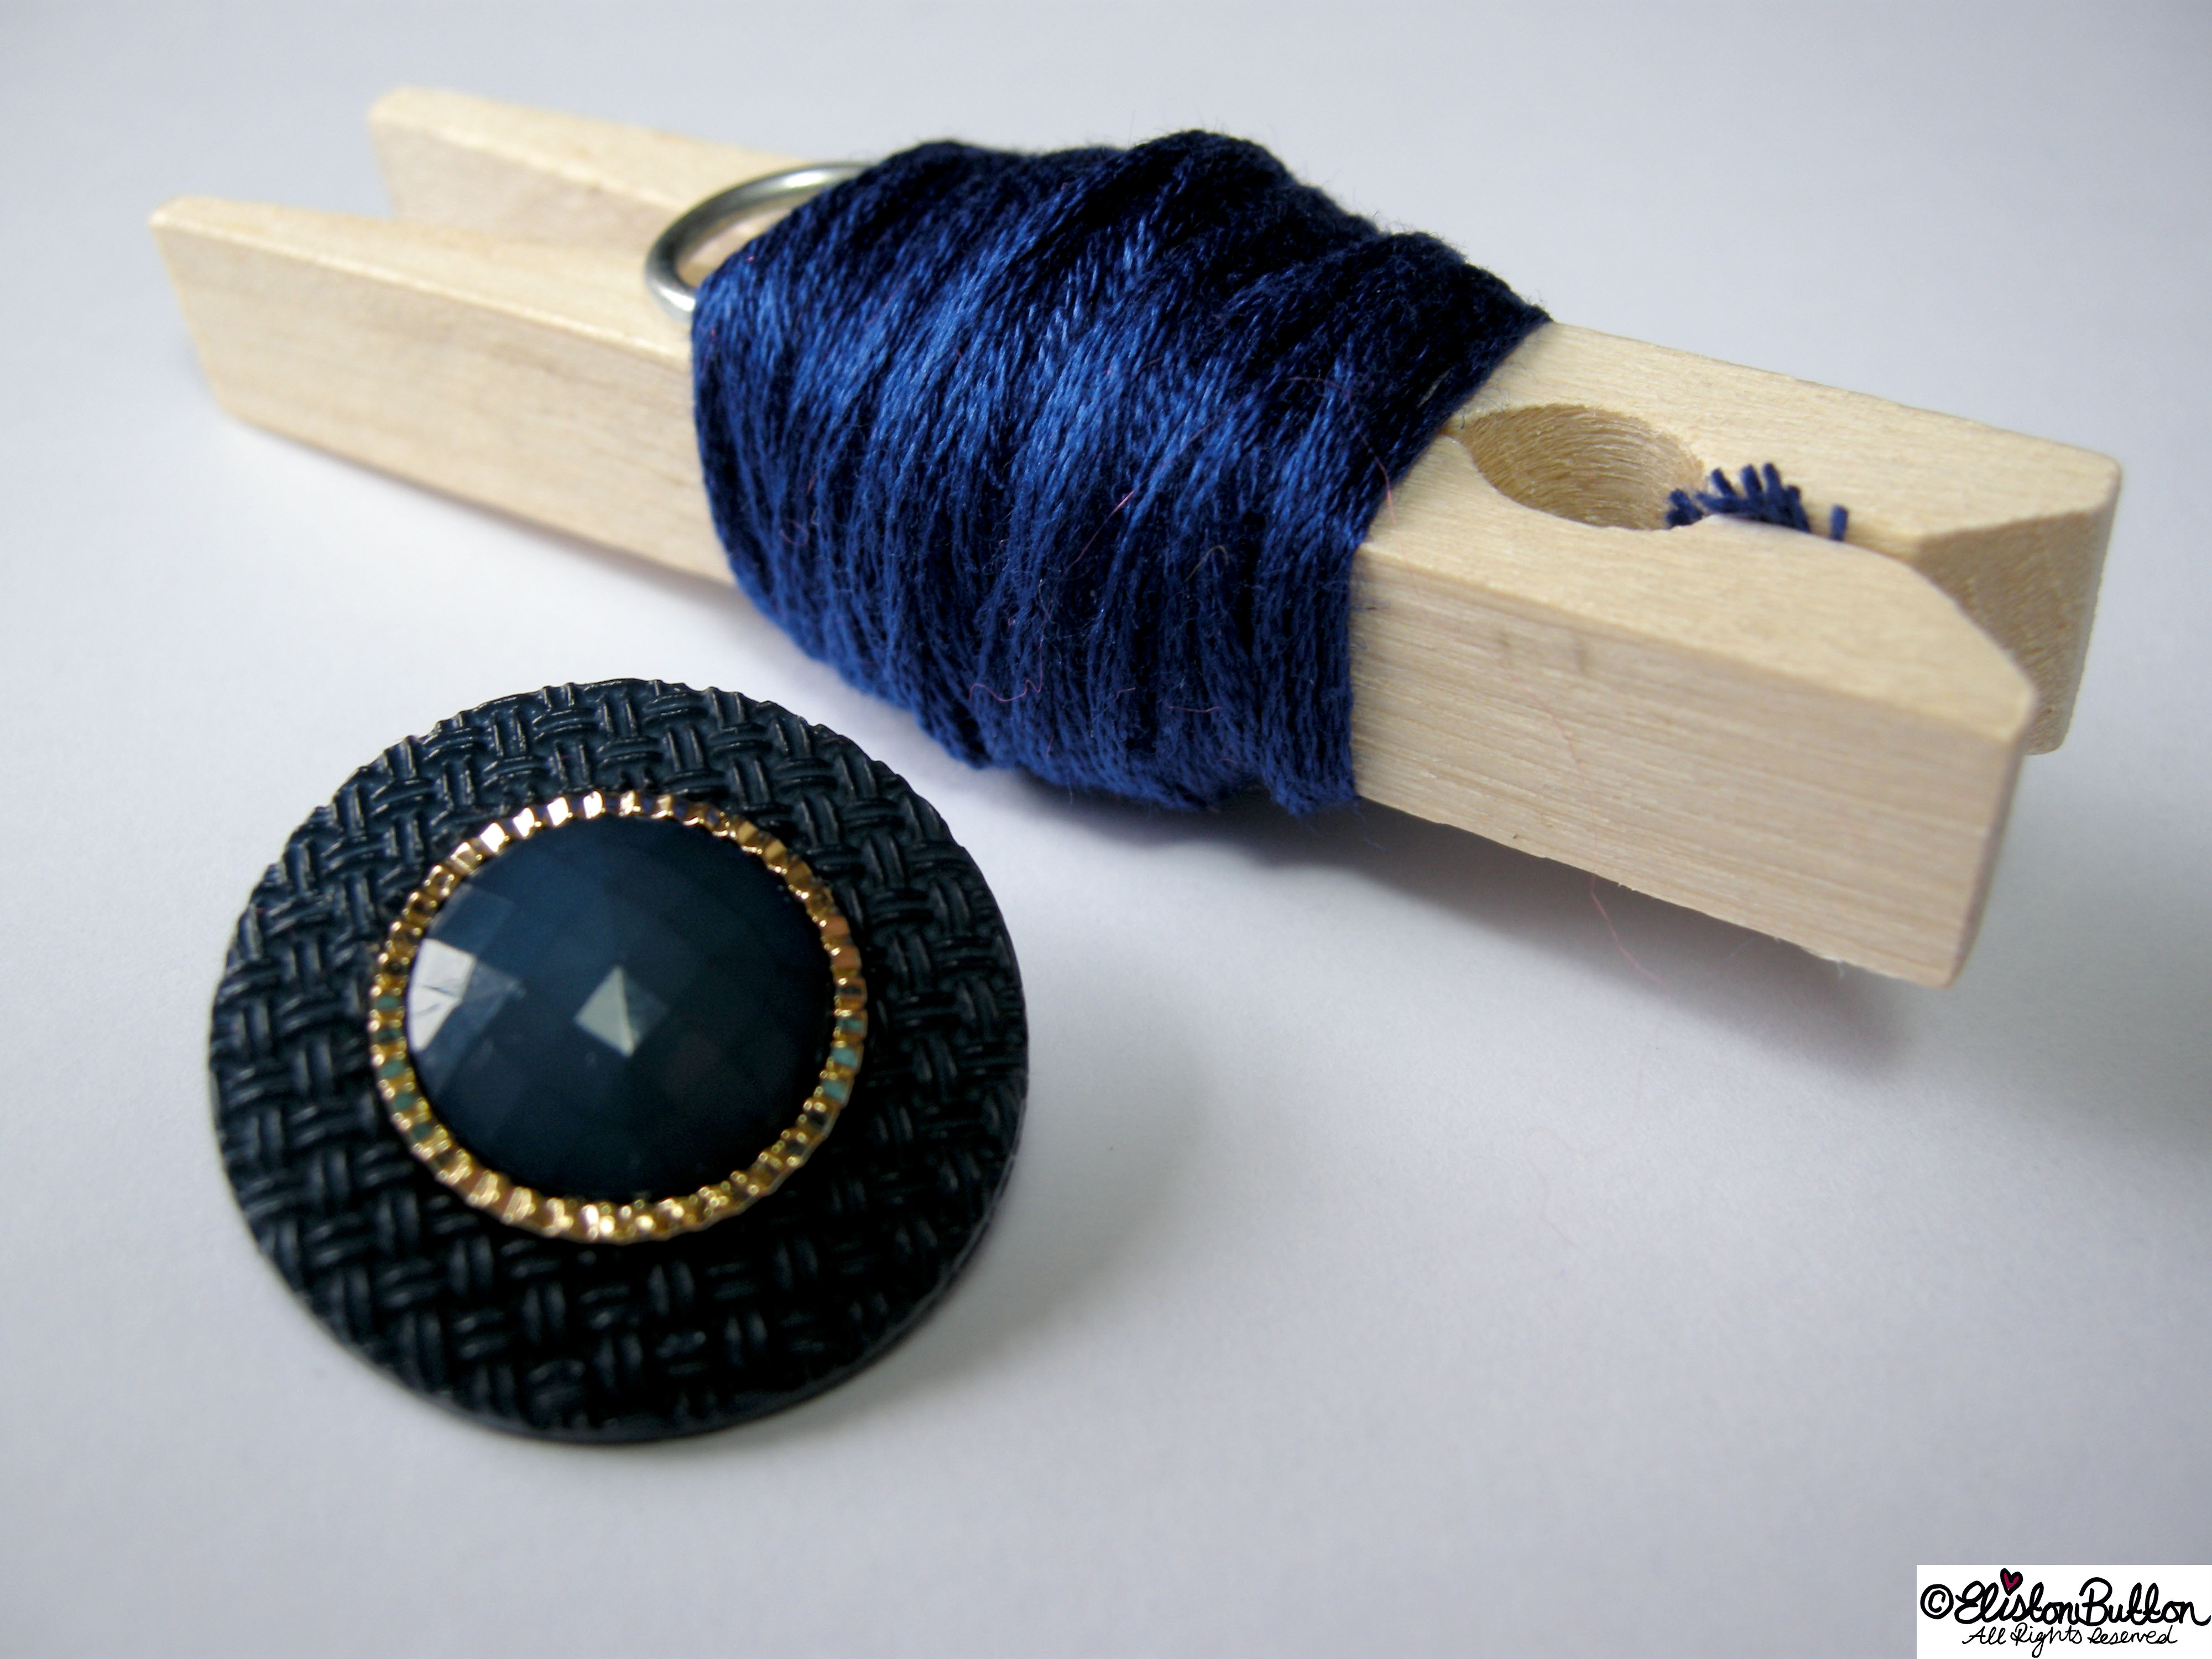 Navy Blue Embroidery Thread and Blue Button with Gold Trim Centrepiece - 27 Before 27 - Pink Hearts at www.elistonbutton.com - Eliston Button - That Crafty Kid – Art, Design, Craft & Adventure.